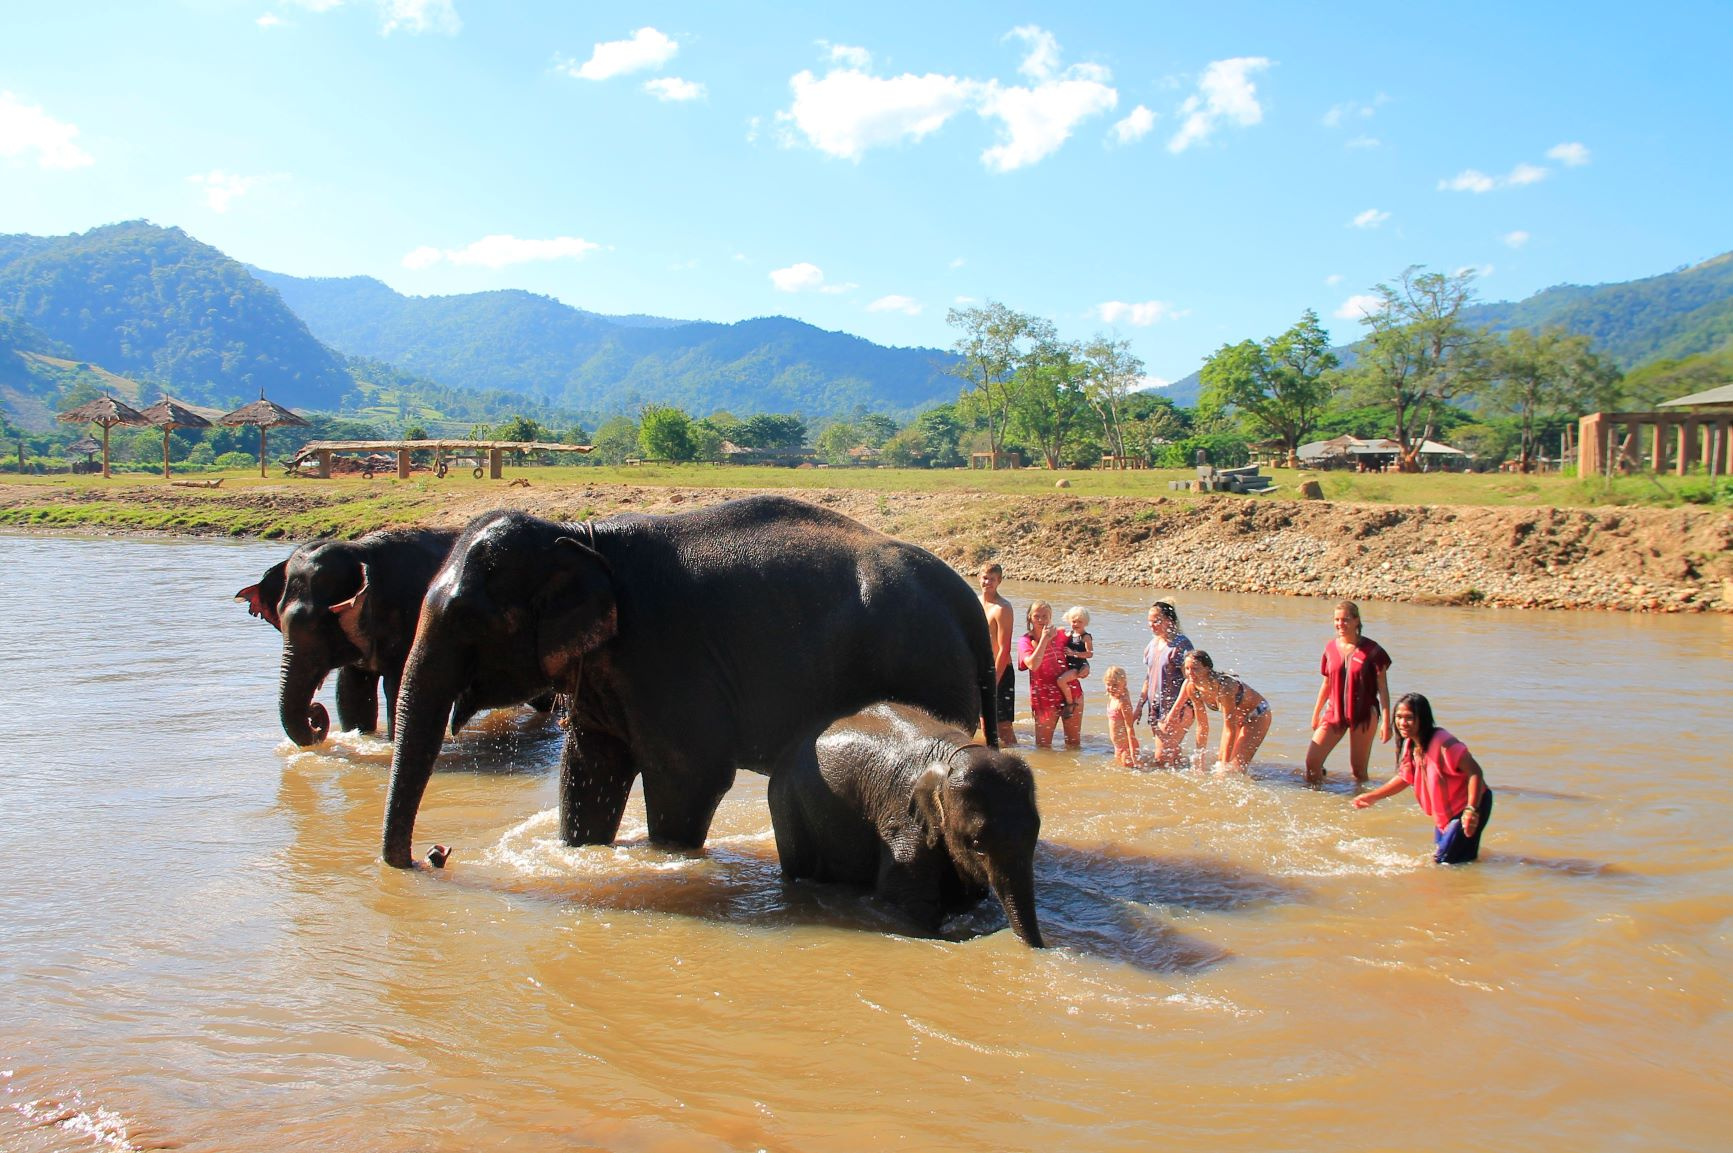 Happy Elephant Home tripadvisor resize.jpg